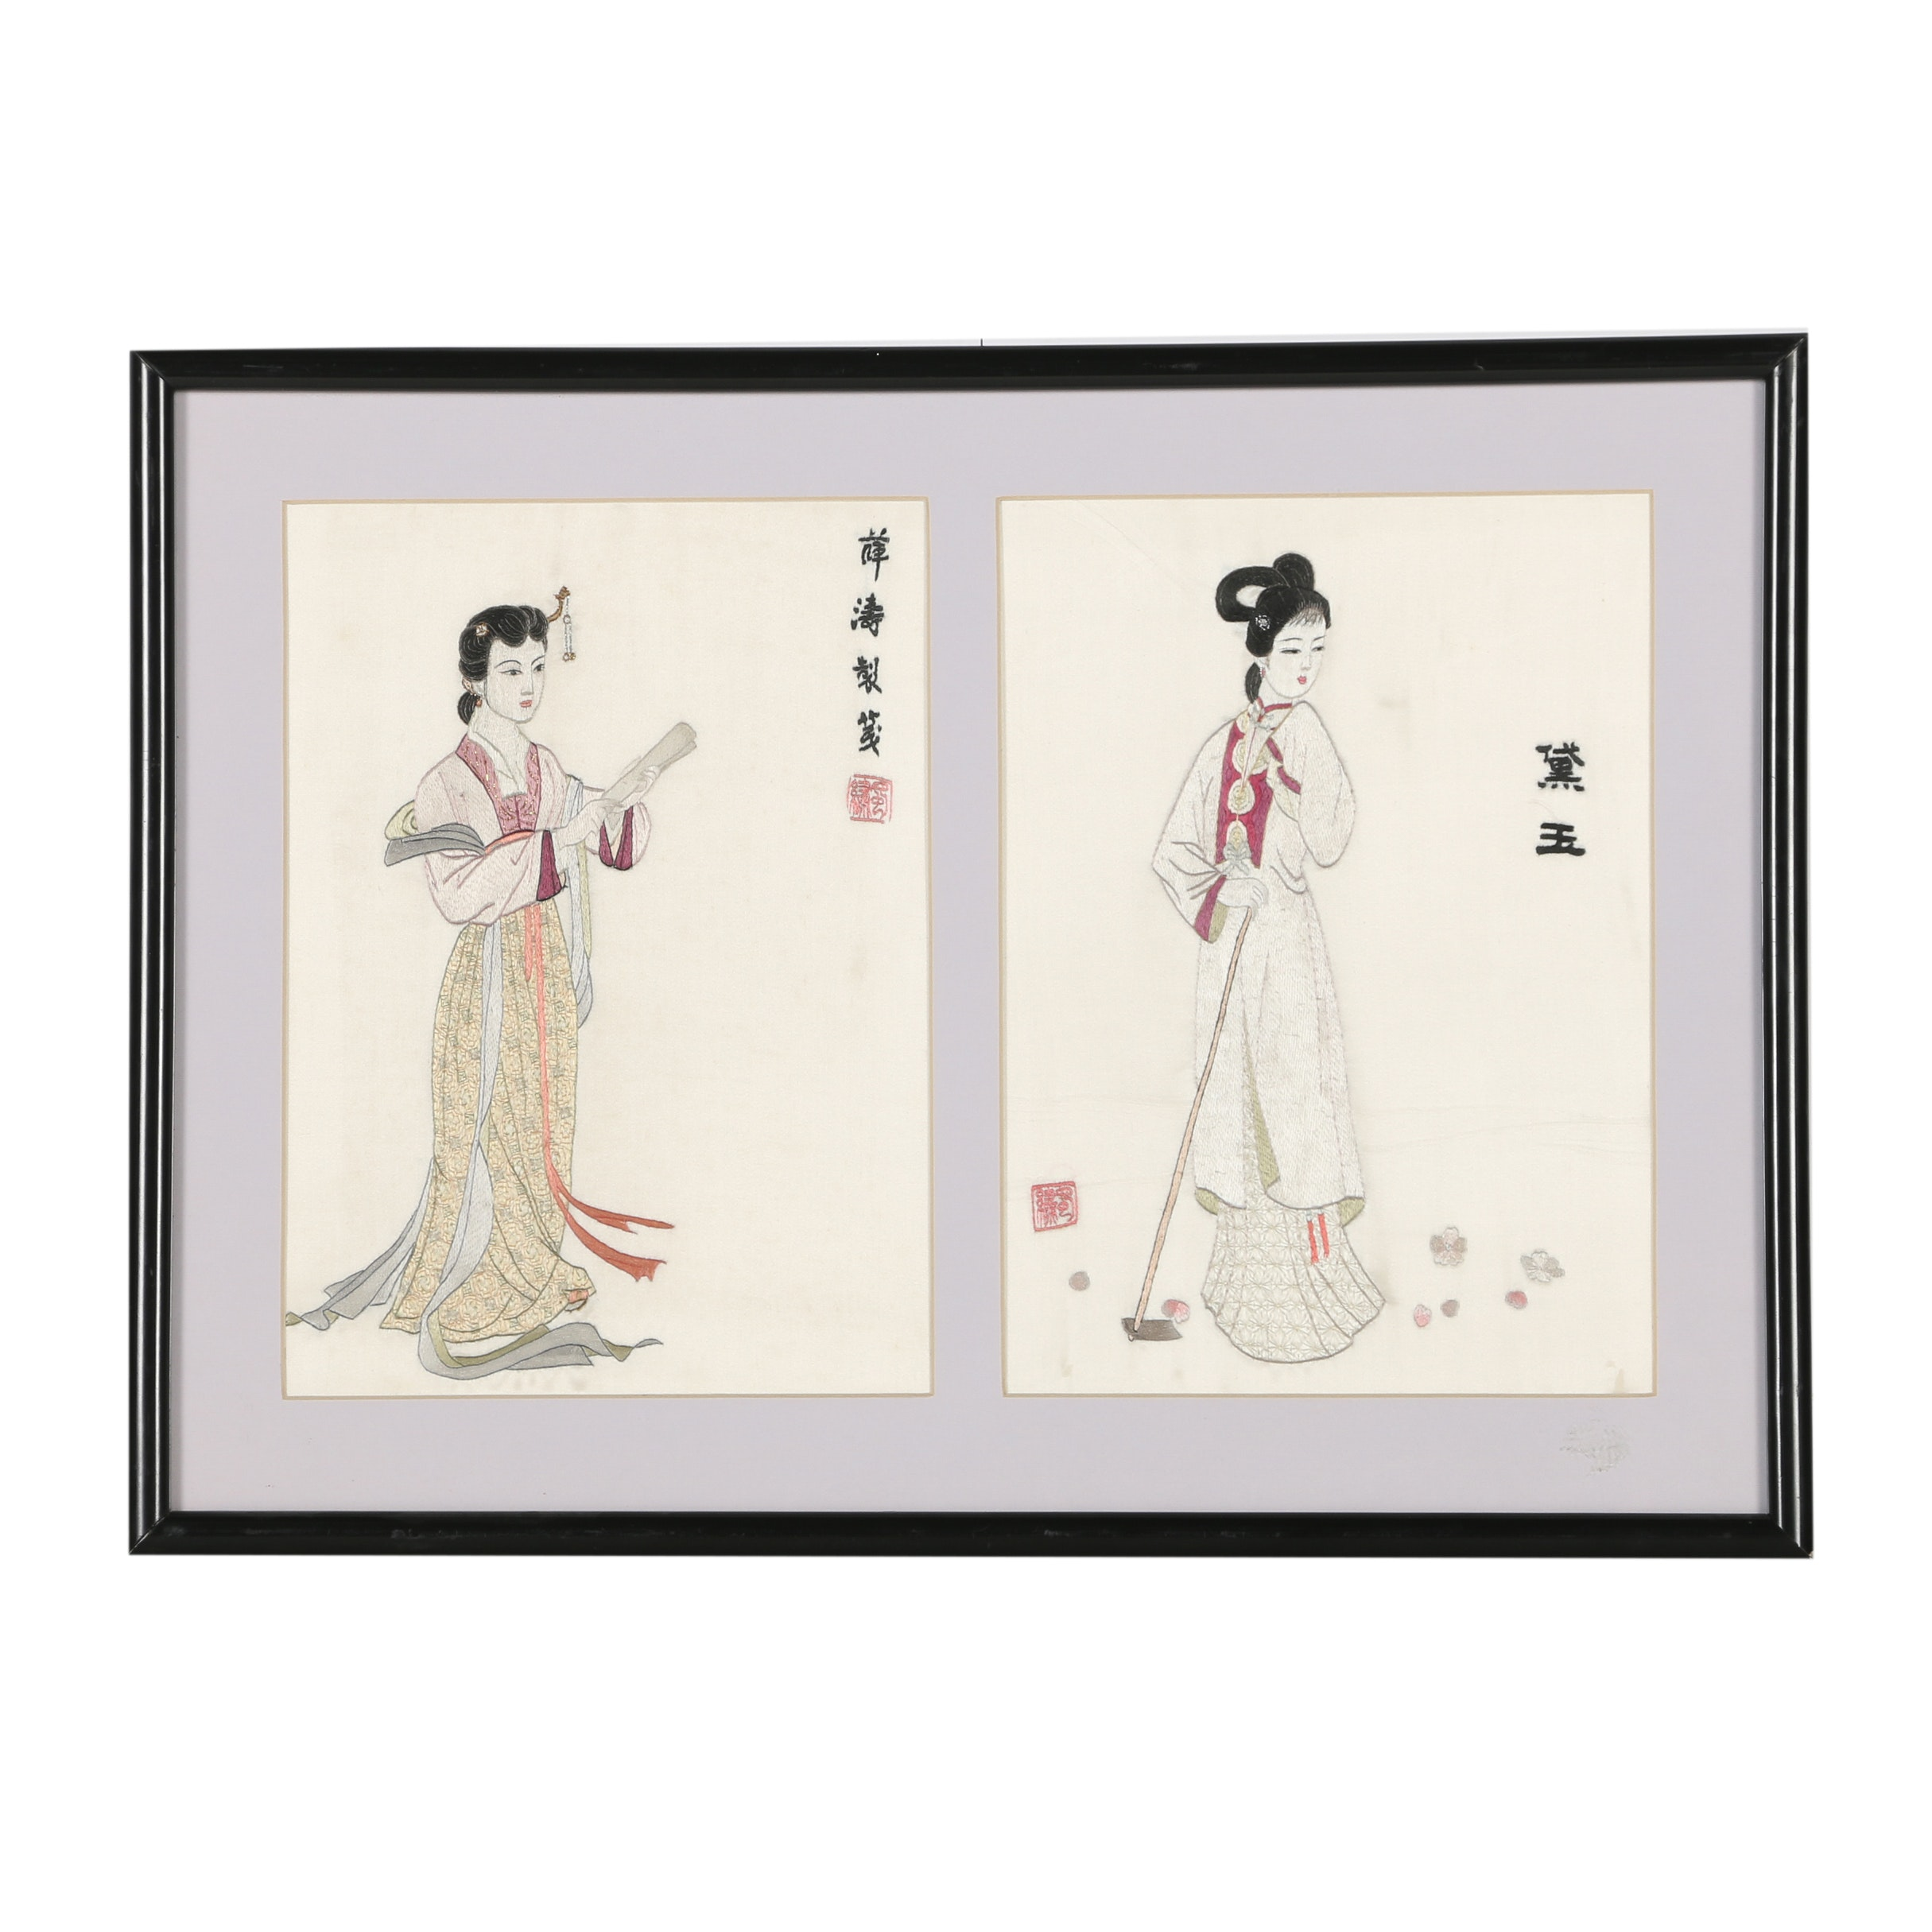 Chinese Embroidered Textile Figurative Scenes